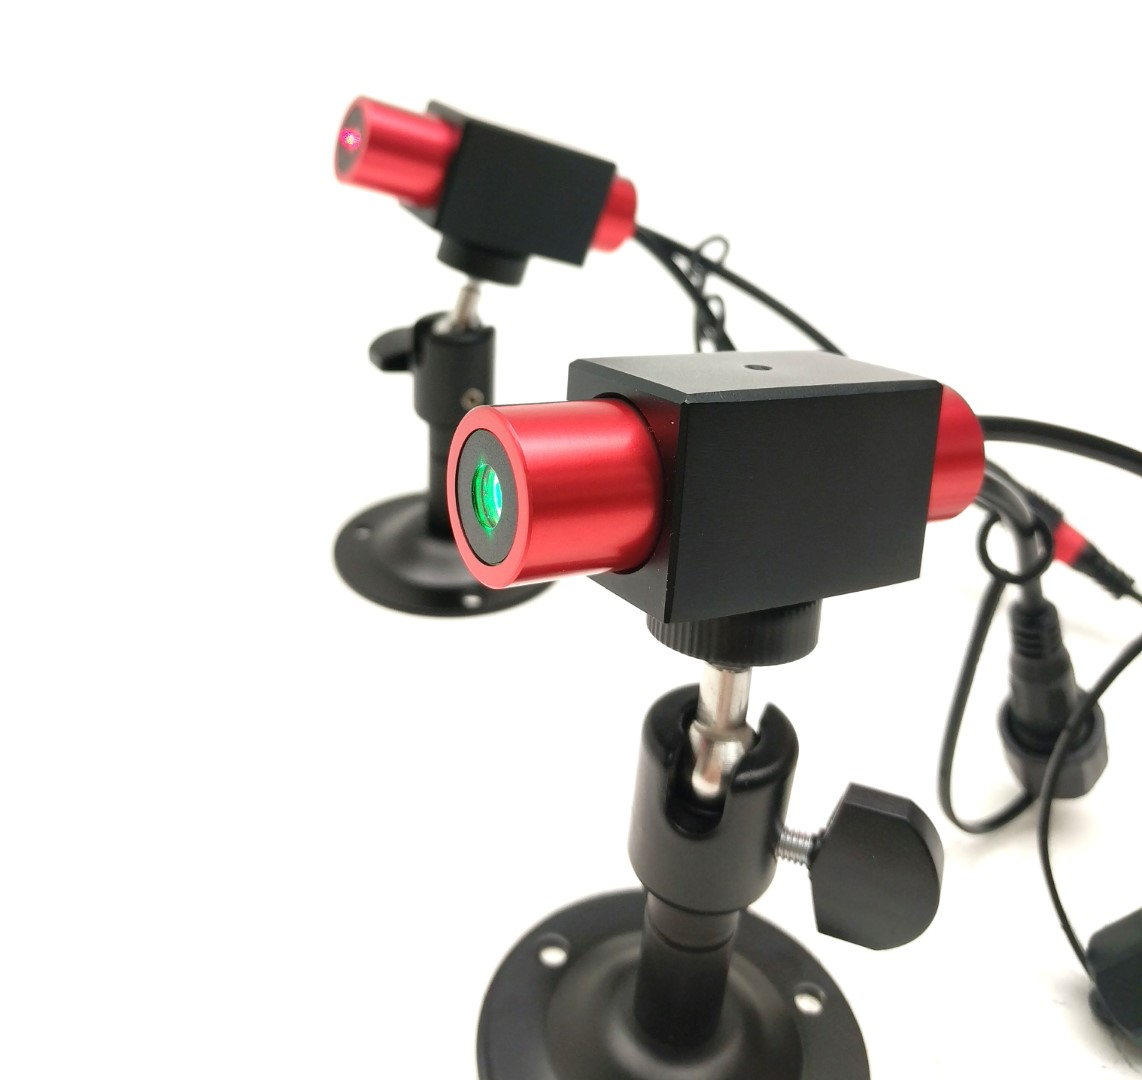 20 mW 520 nm Green Premium Structured Reticle Laser, 18° fan angle, adjustable focus, TTL+, Sealed IP67